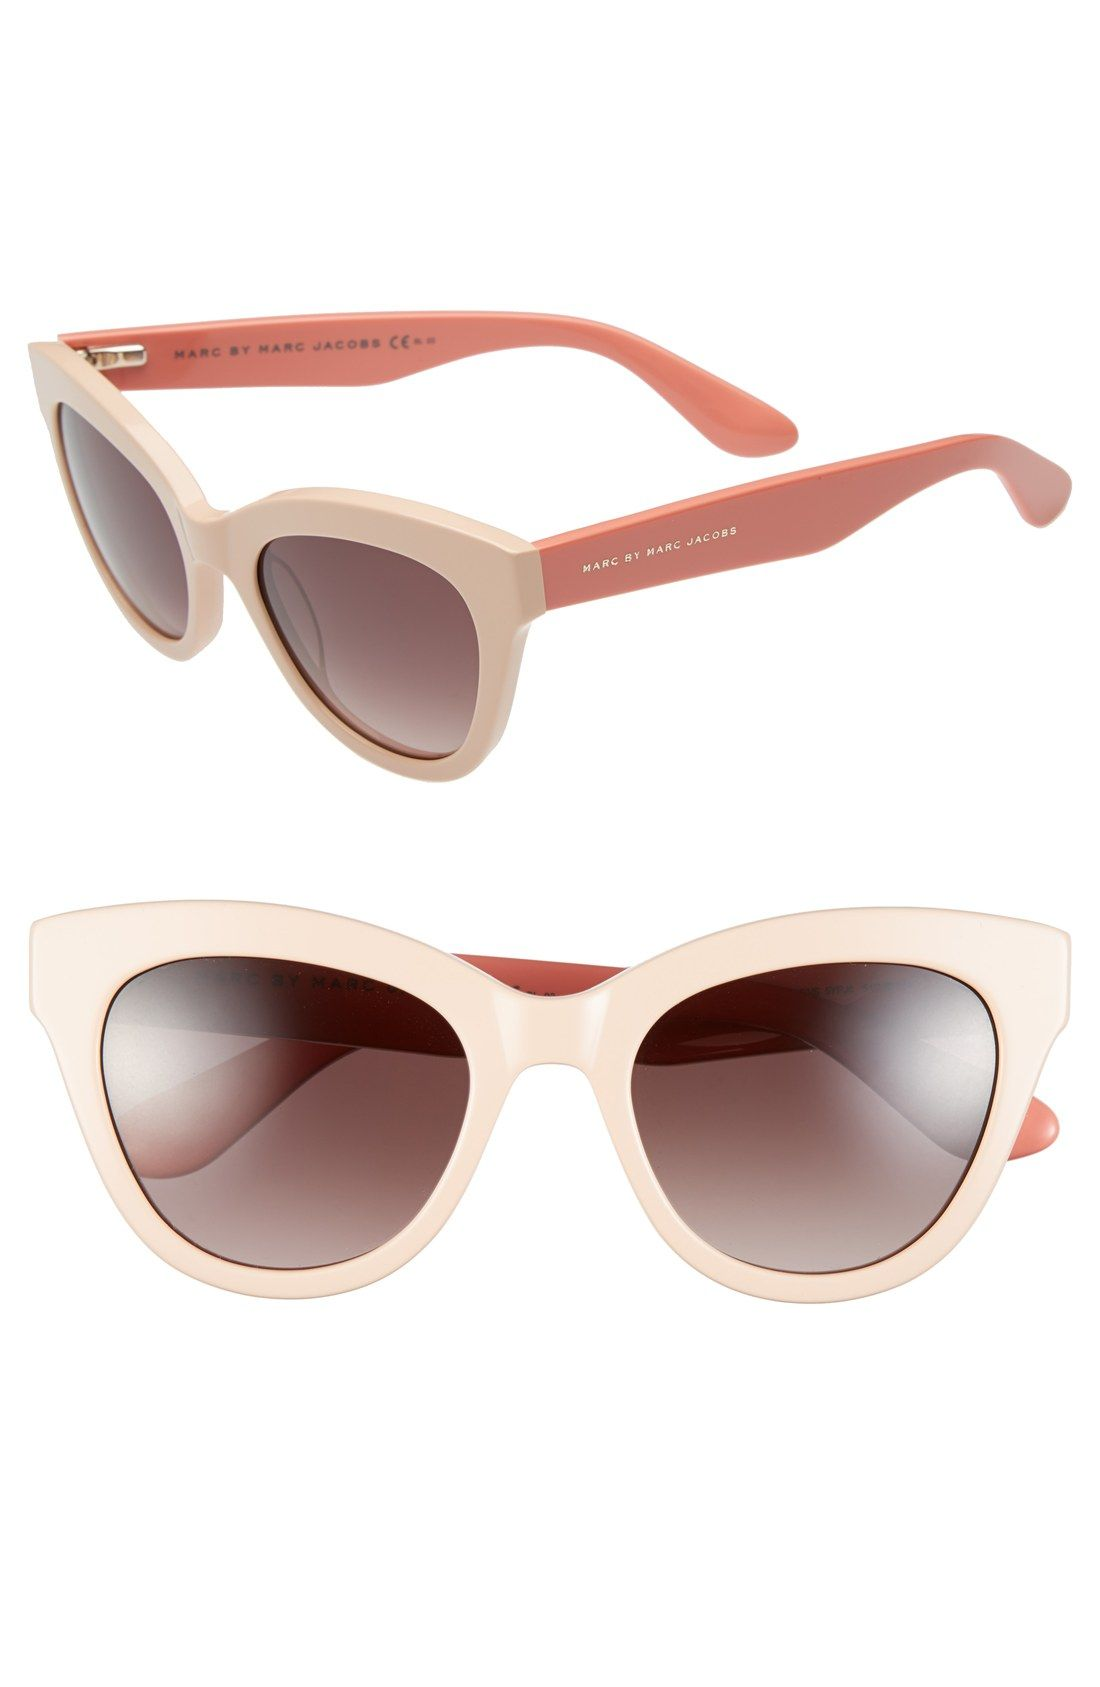 4f19f883f0016 Loving the vintage vibes of these pink retro cat-eye Marc Jacobs sunnies.